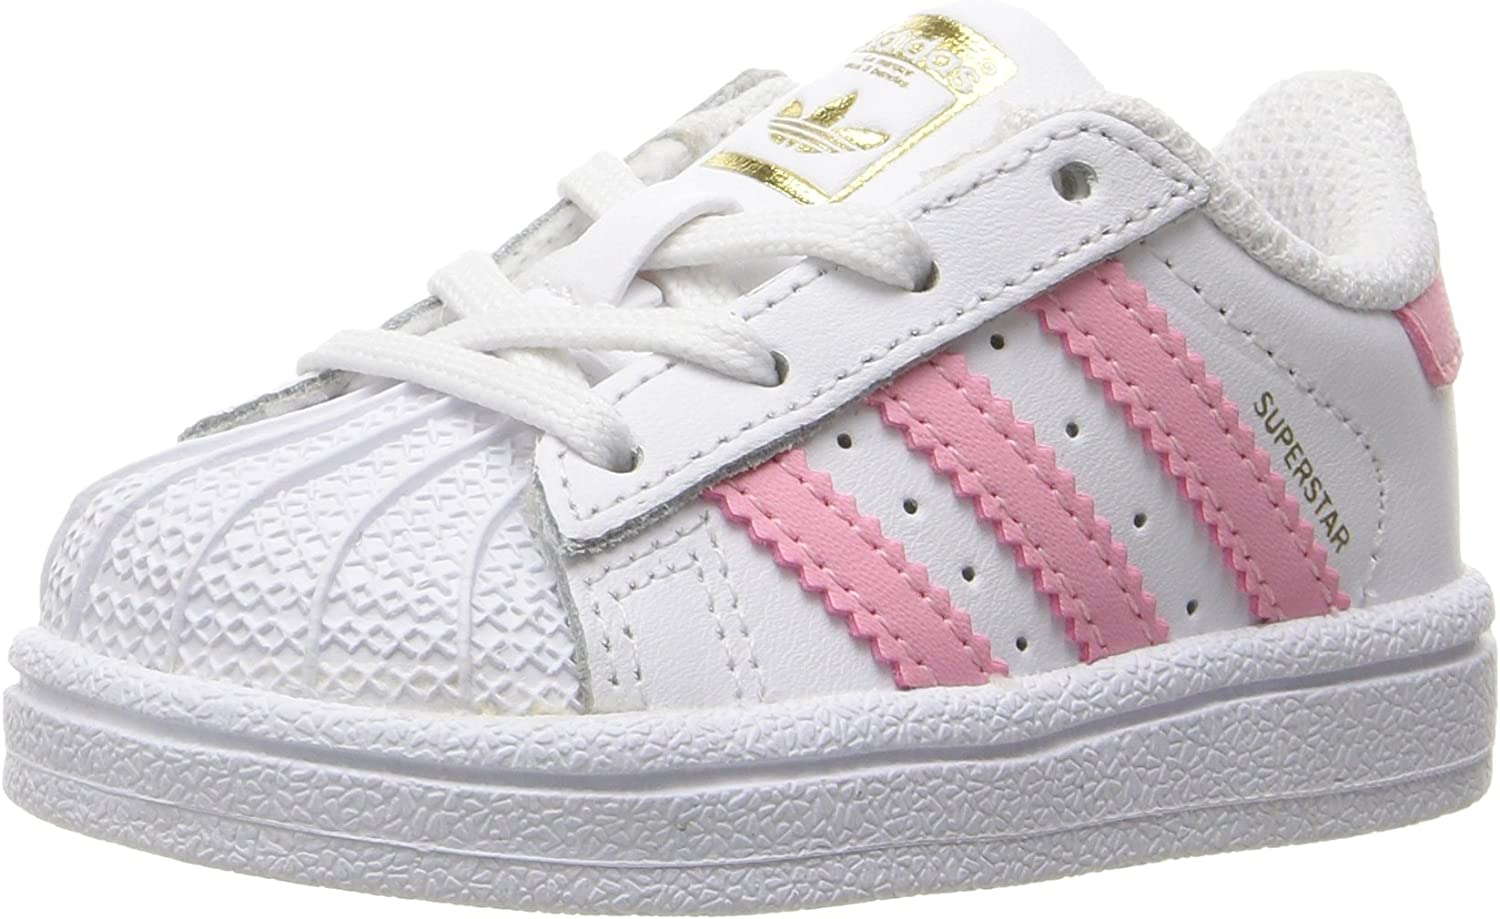 adidas Originals Kids Superstar, White Clear Light Pink Metallic Gold, 7K M US Toddler